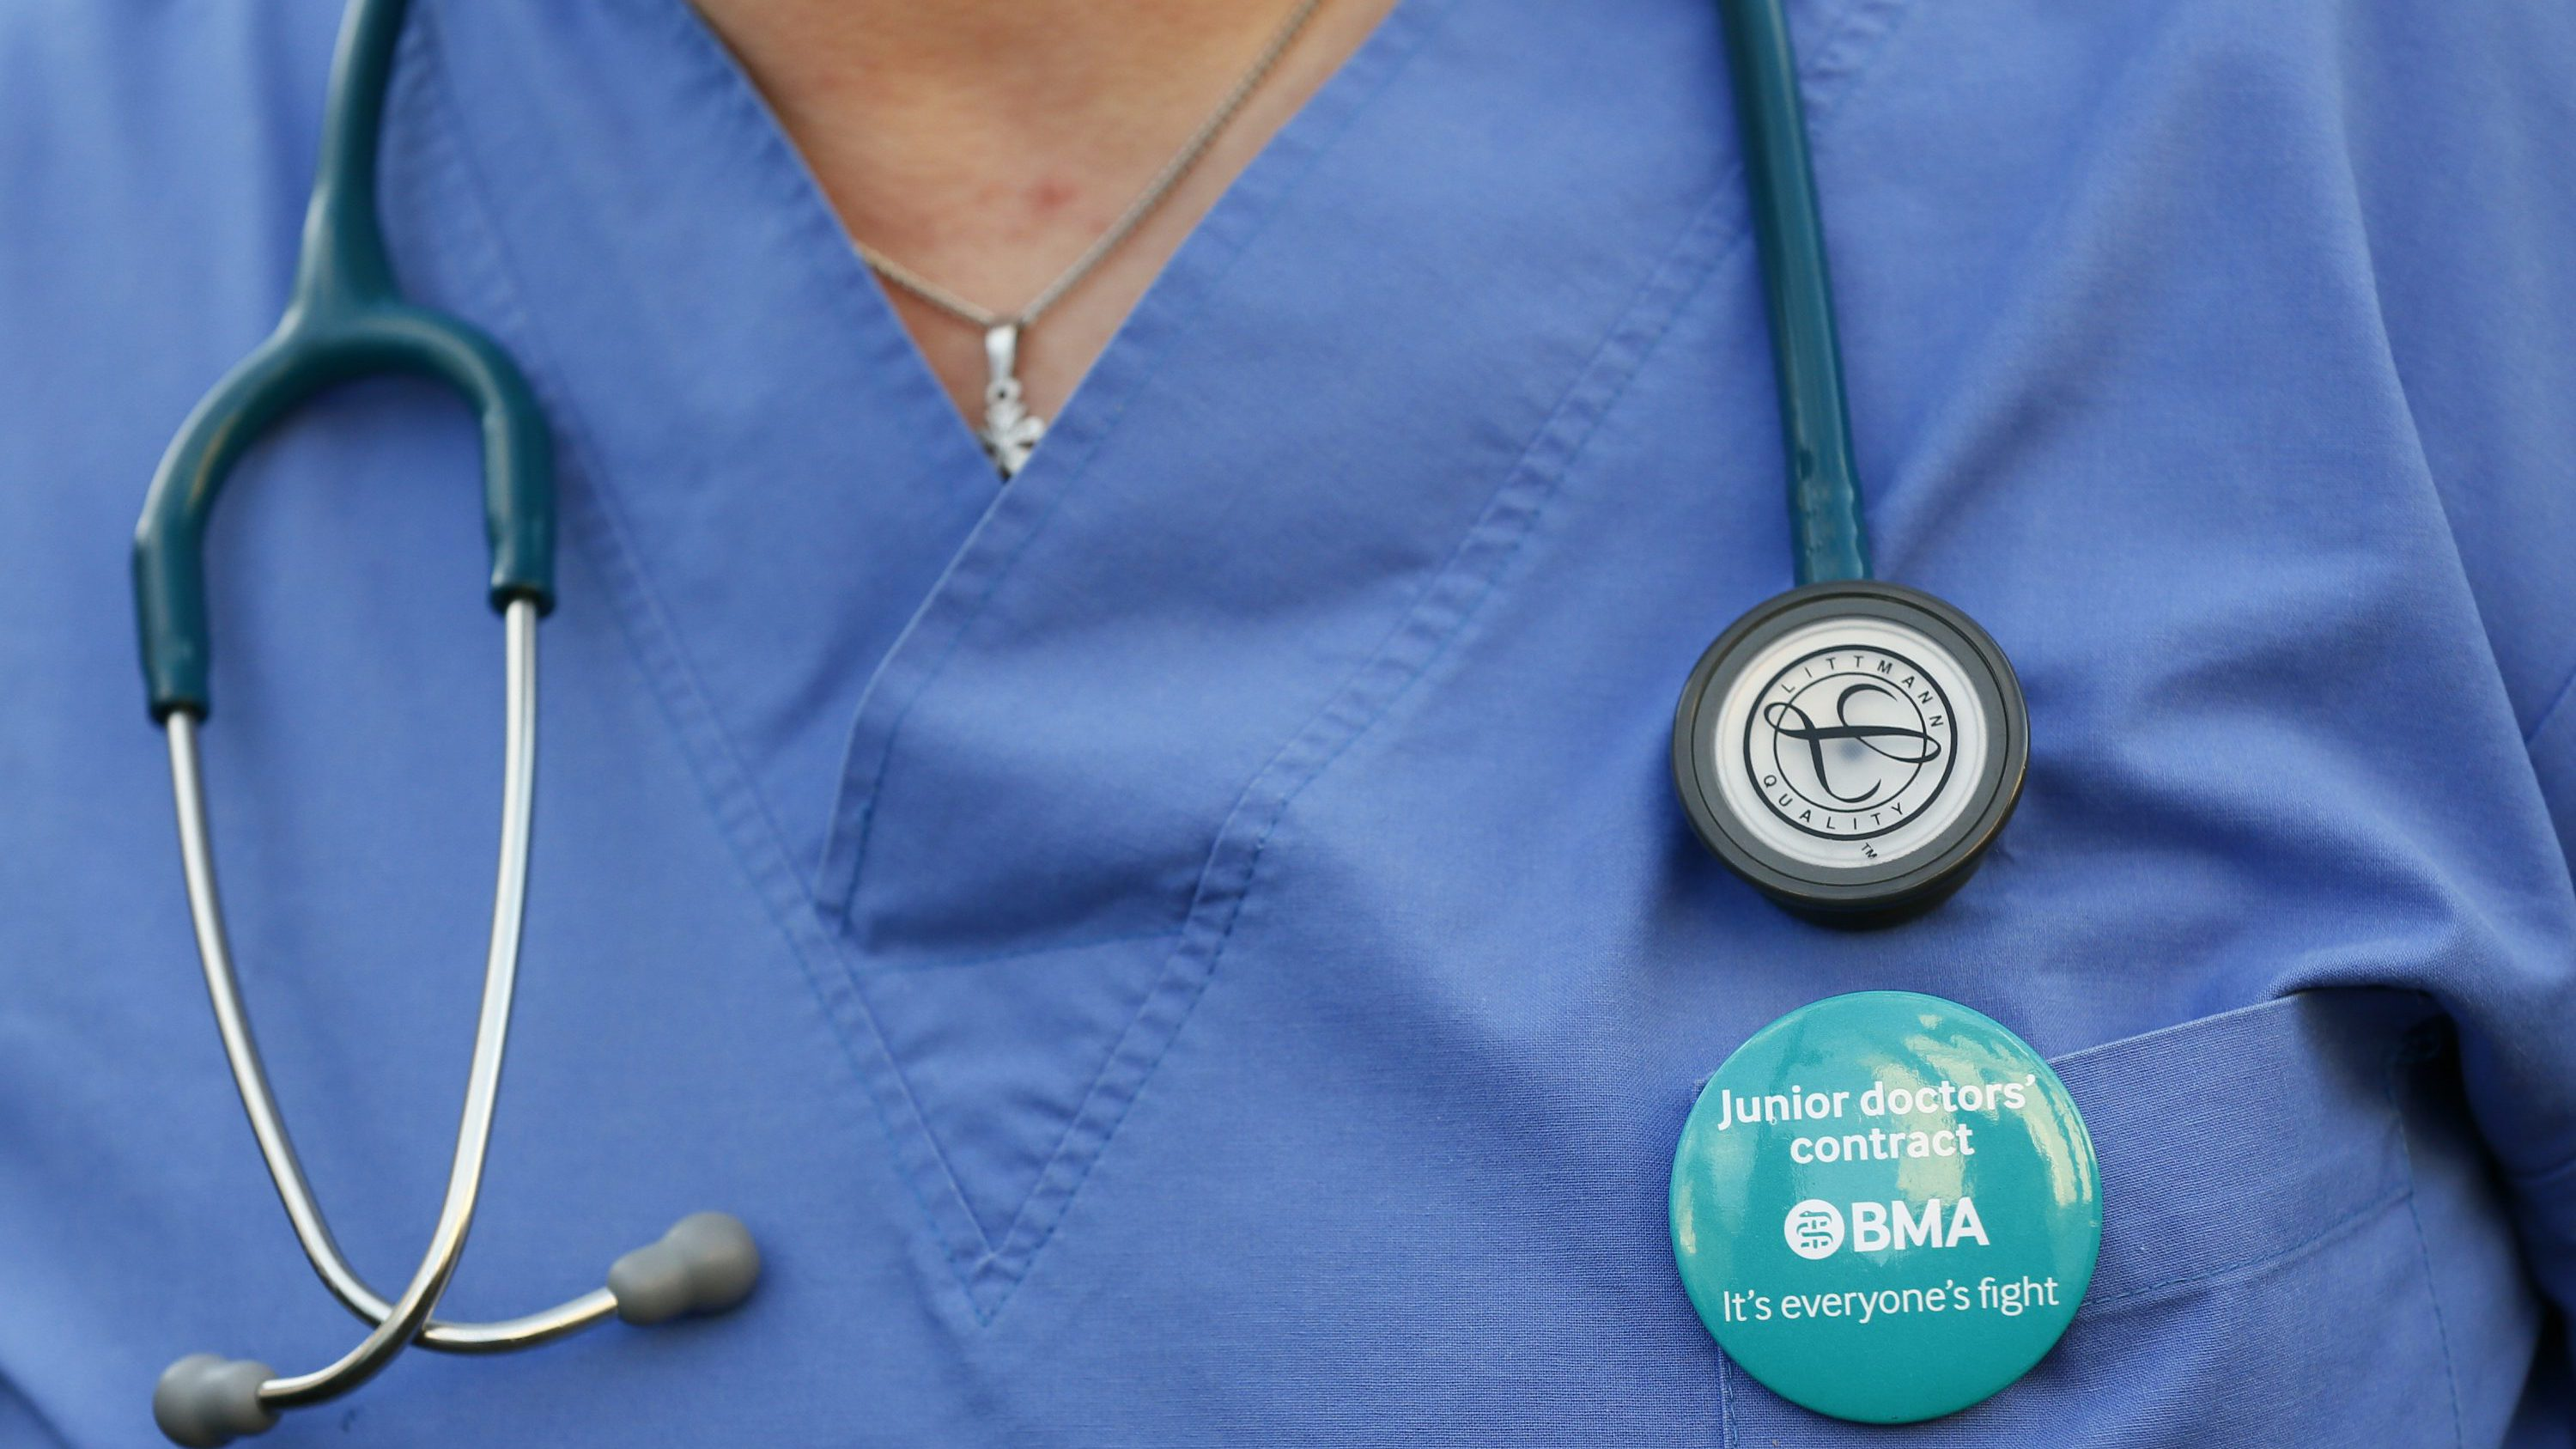 A doctor wears her stethoscope around her neck during a strike outside St Thomas' hospital in central London, Britain January 12, 2016. English doctors staged their first strike in 40 years on Tuesday over government plans to reform pay and conditions for working anti-social hours, in a move health chiefs have warned could put patients' lives at risk.